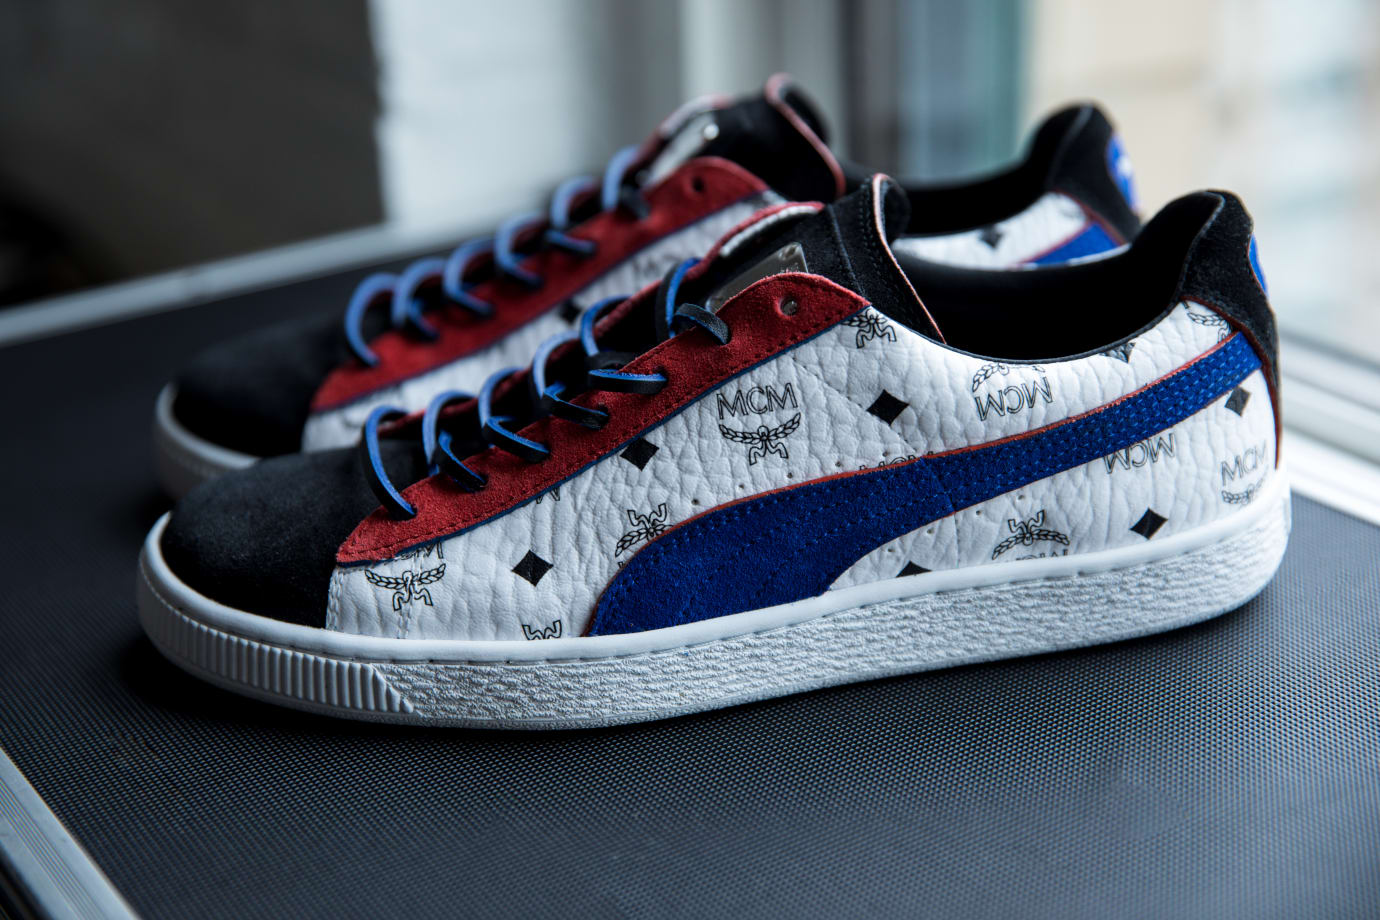 MCM x Puma Suede Collection 2